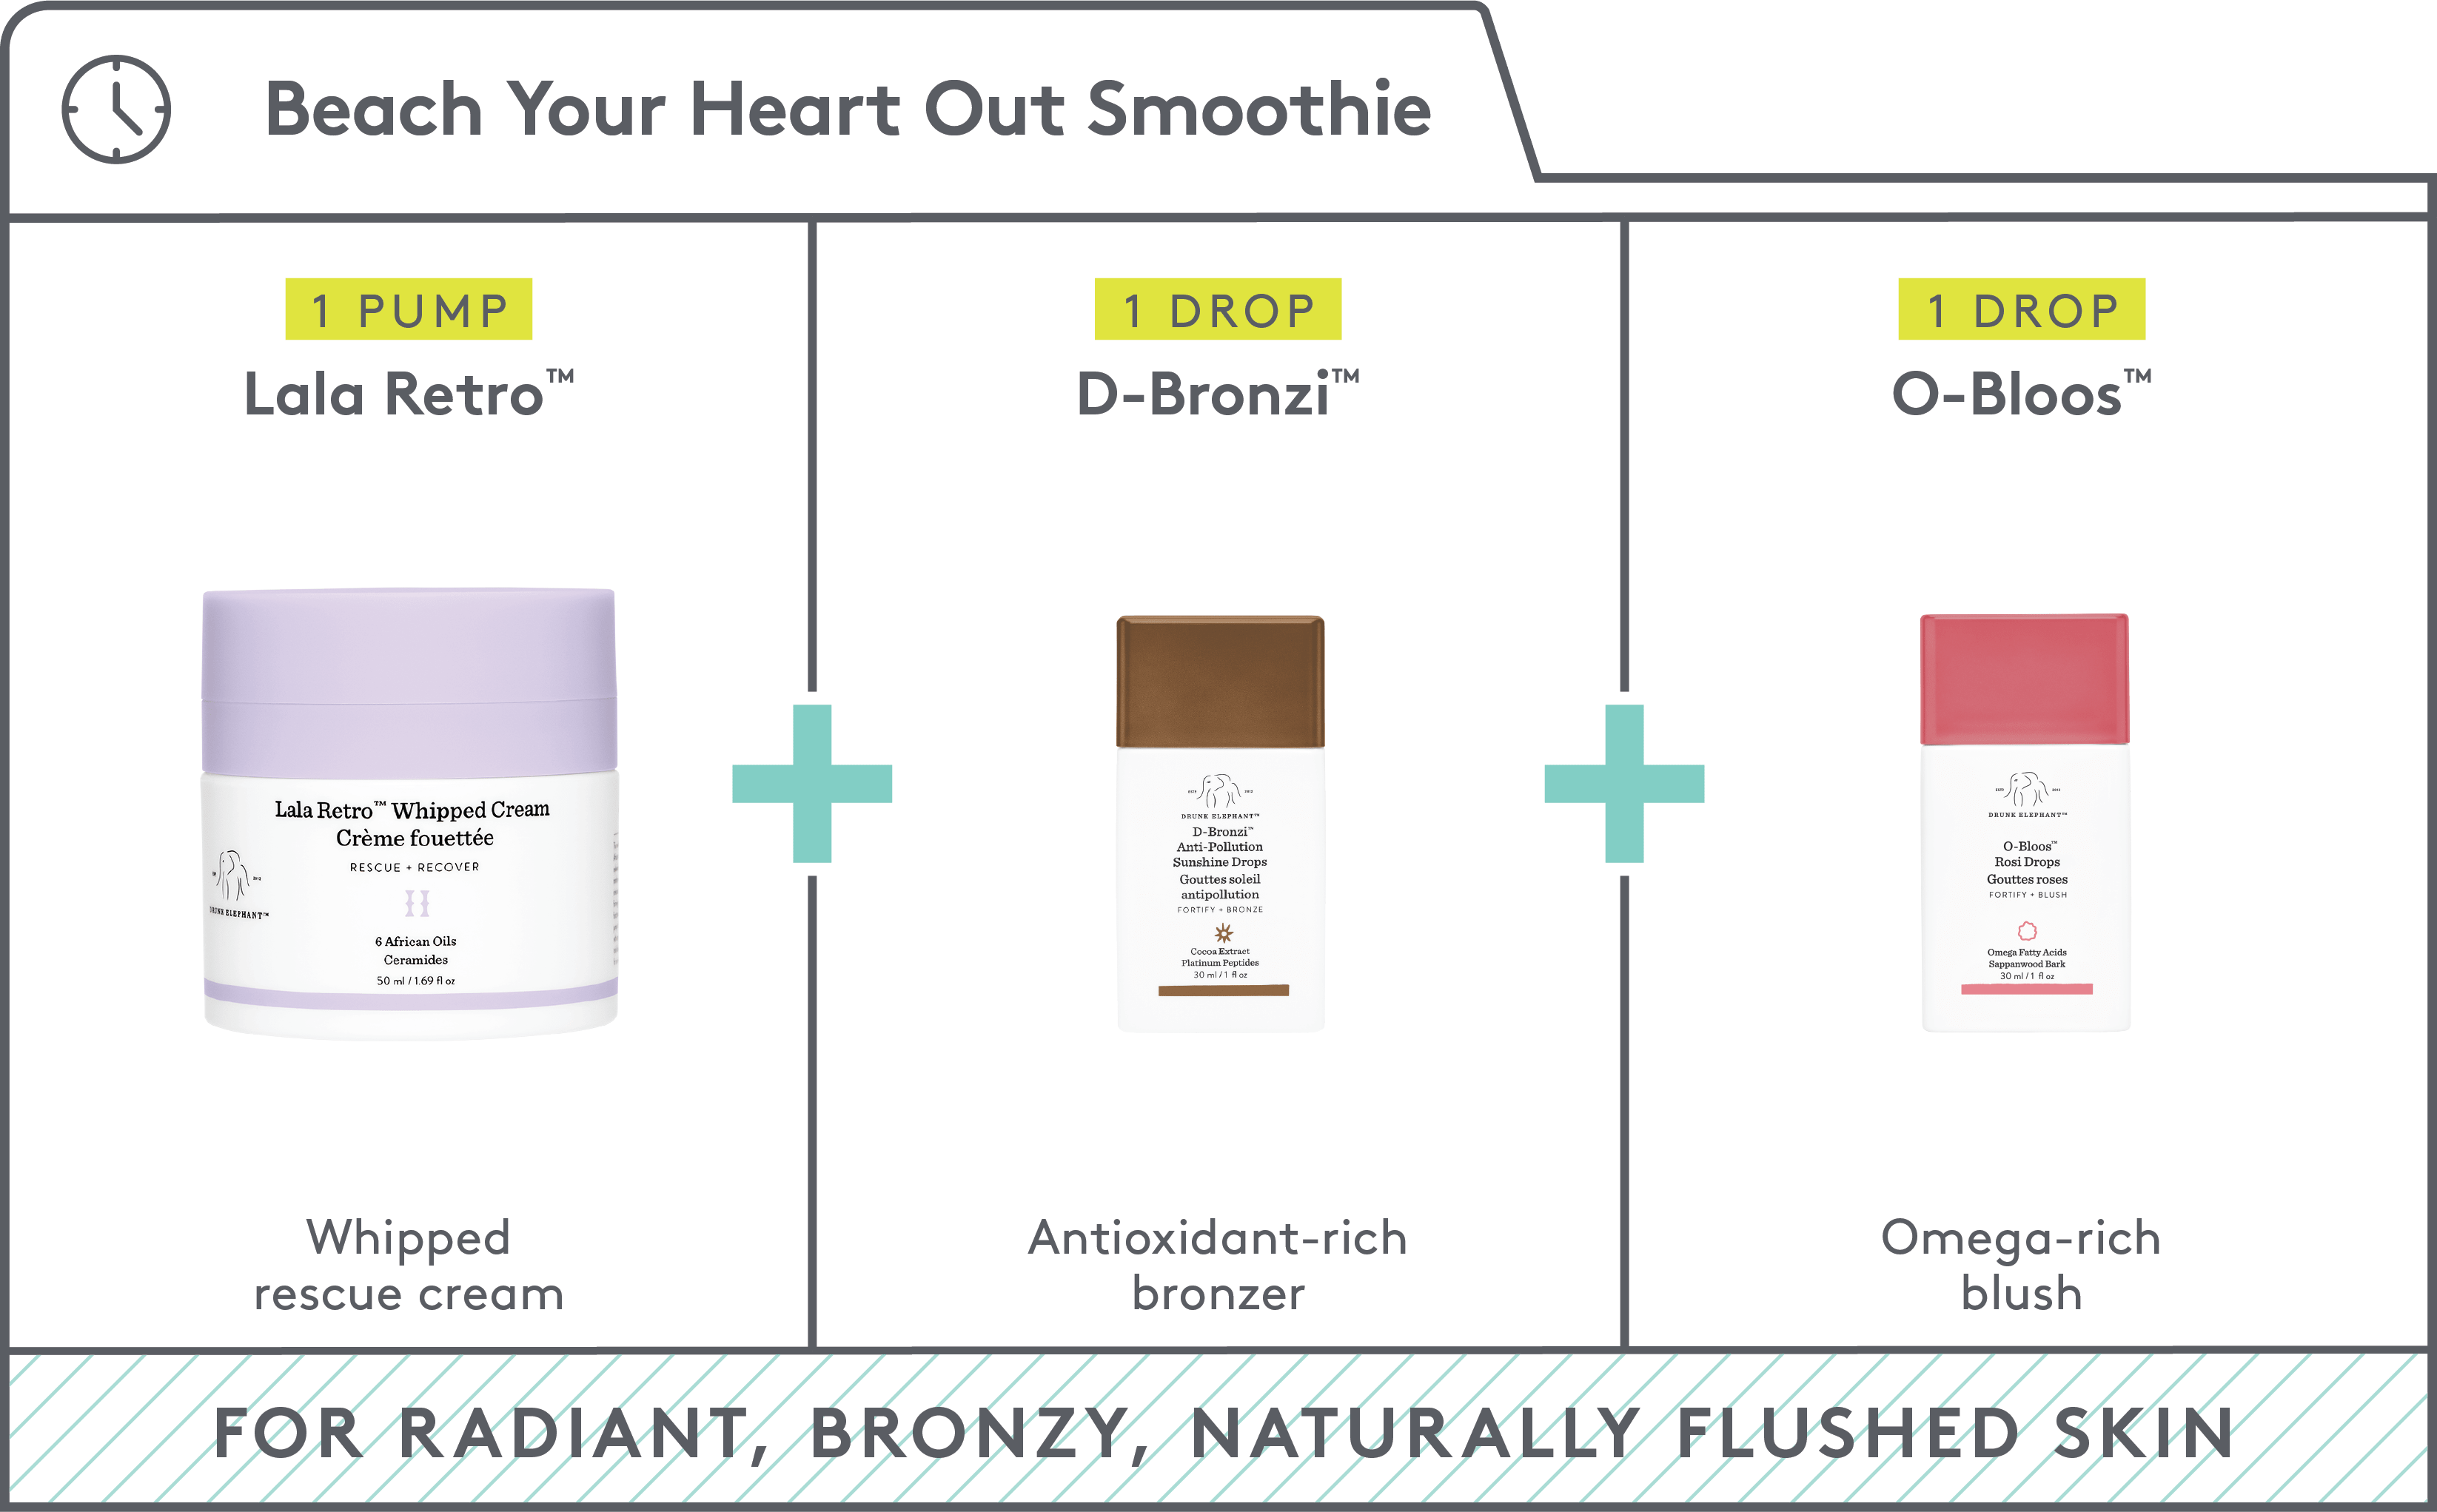 Beach Your Heart Out Smoothie